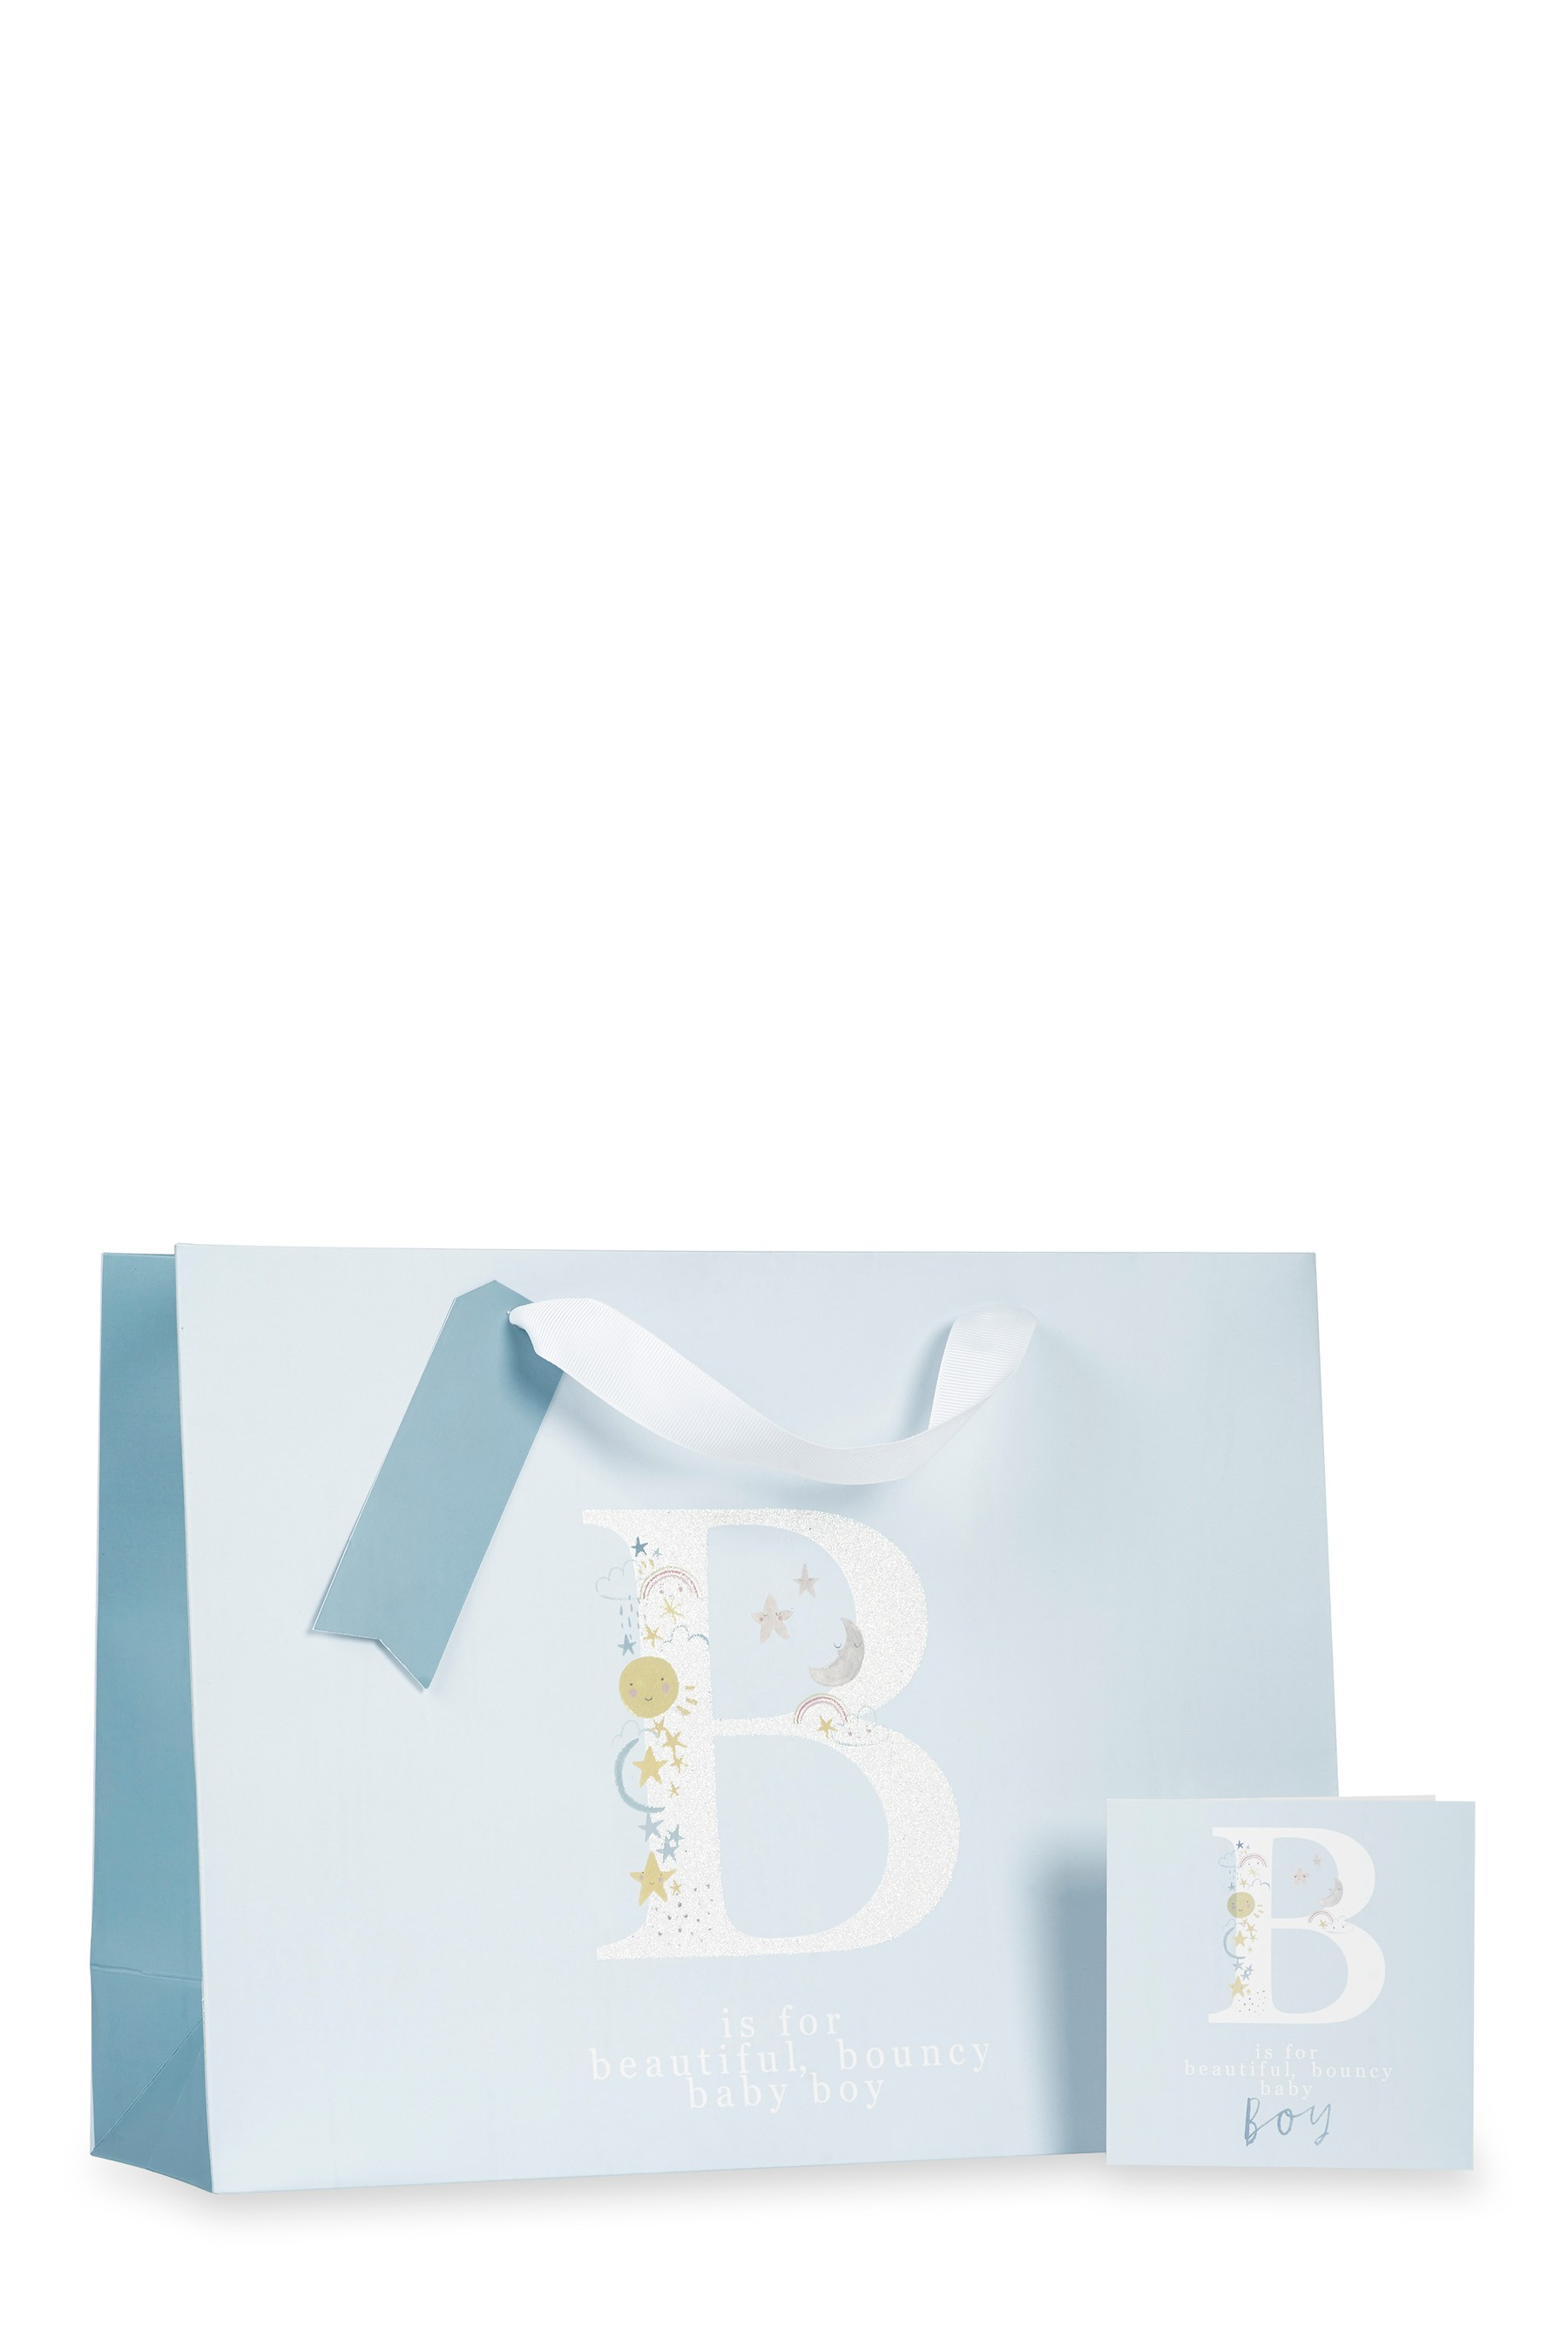 Compare retail prices of Boys Next Baby Boy Monogram Bag, Card And Tissue Set - Blue to get the best deal online